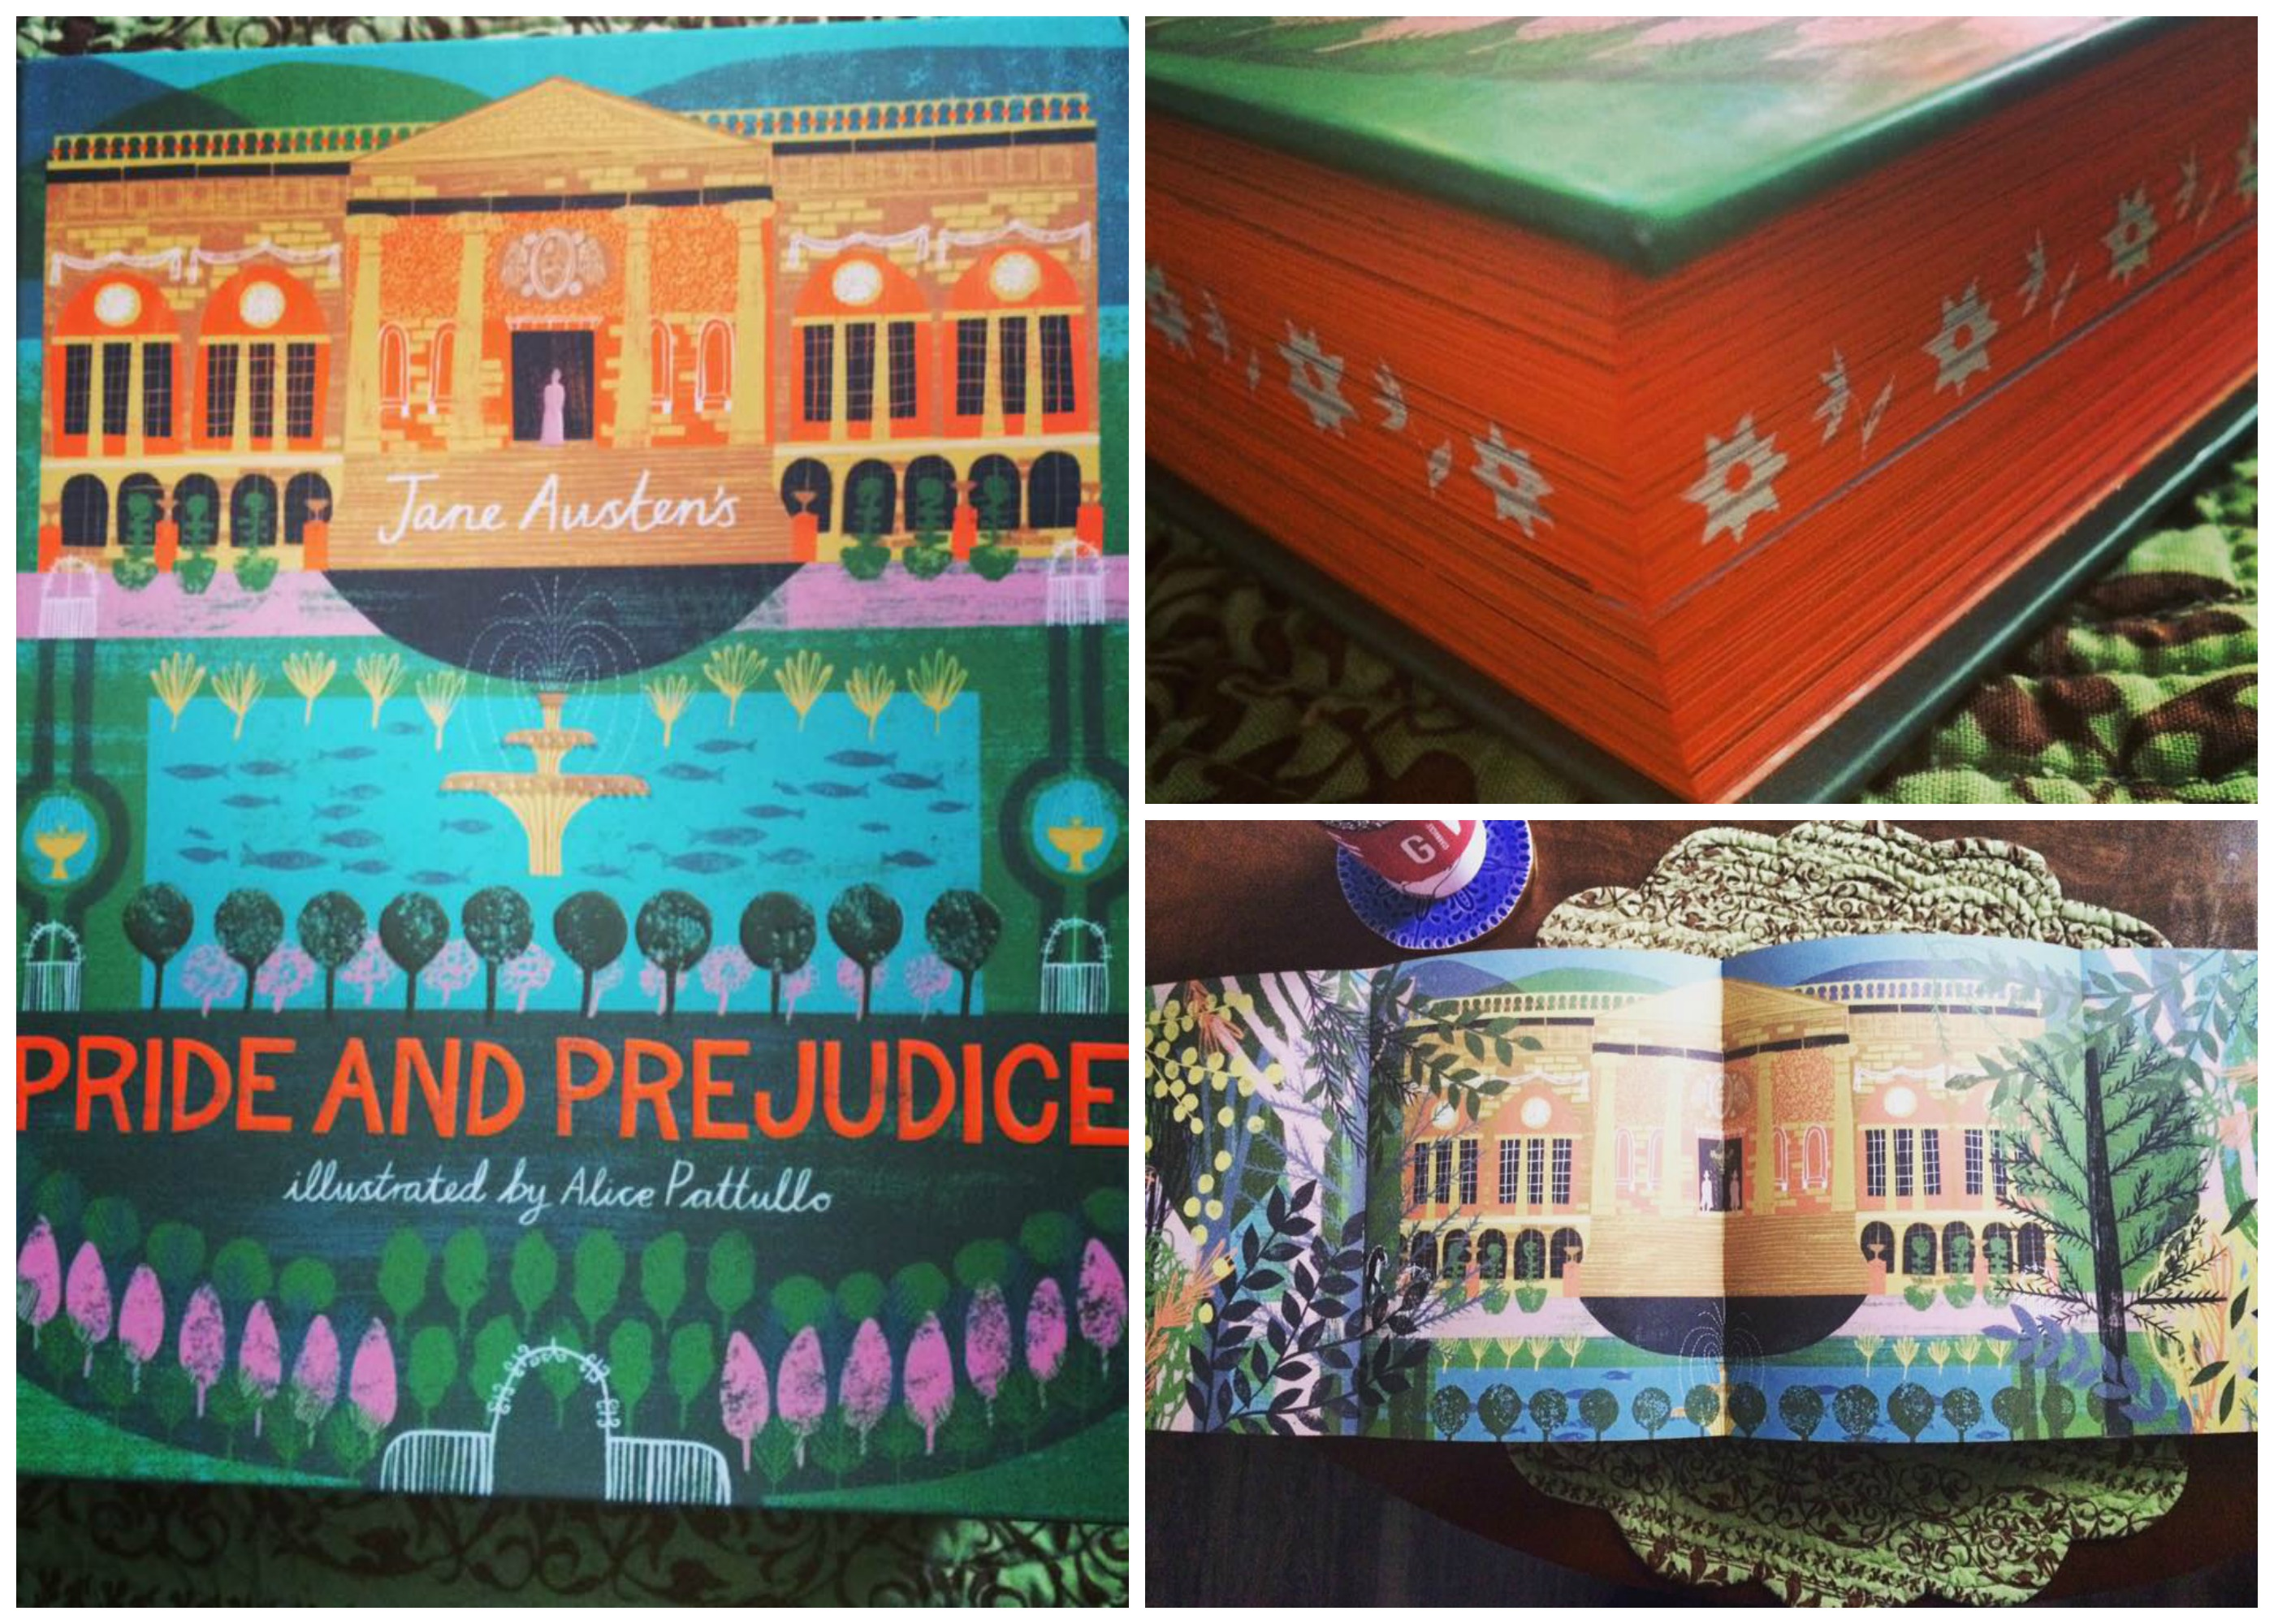 Classics Reimagined Pride and Prejudice illustrated by Alice Pattullo